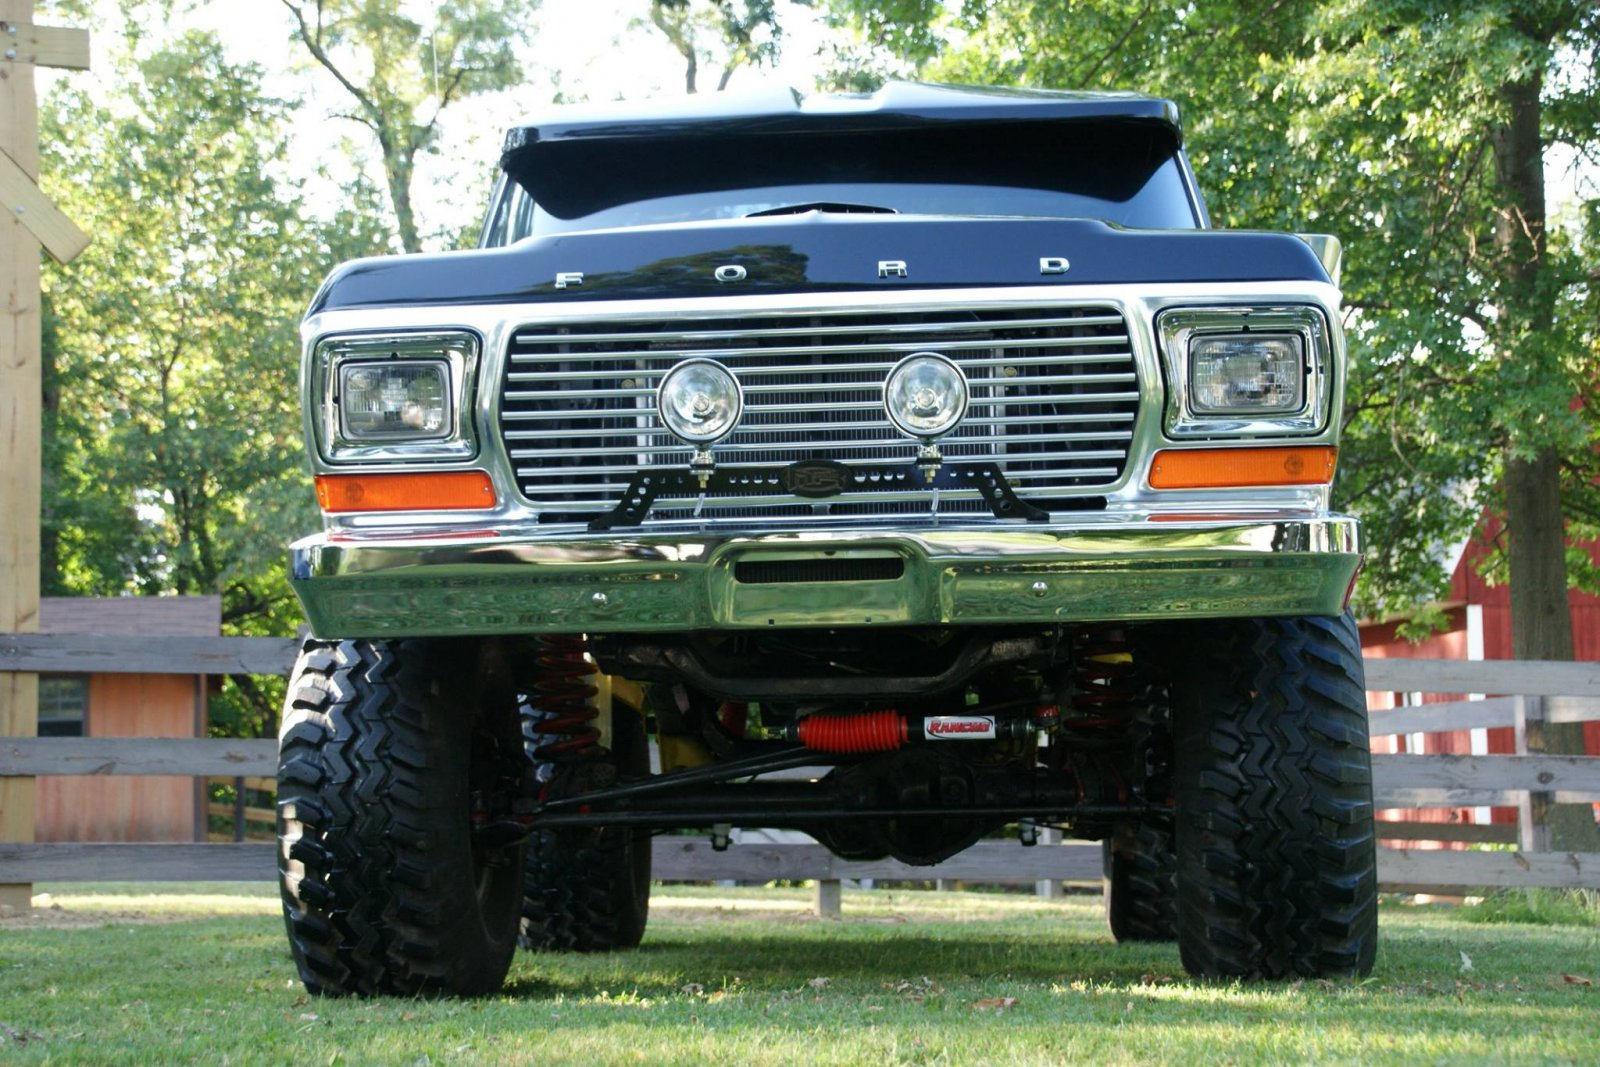 1979 Ford F150 With a 460 Dupont Jet Black Paint 7.jpg